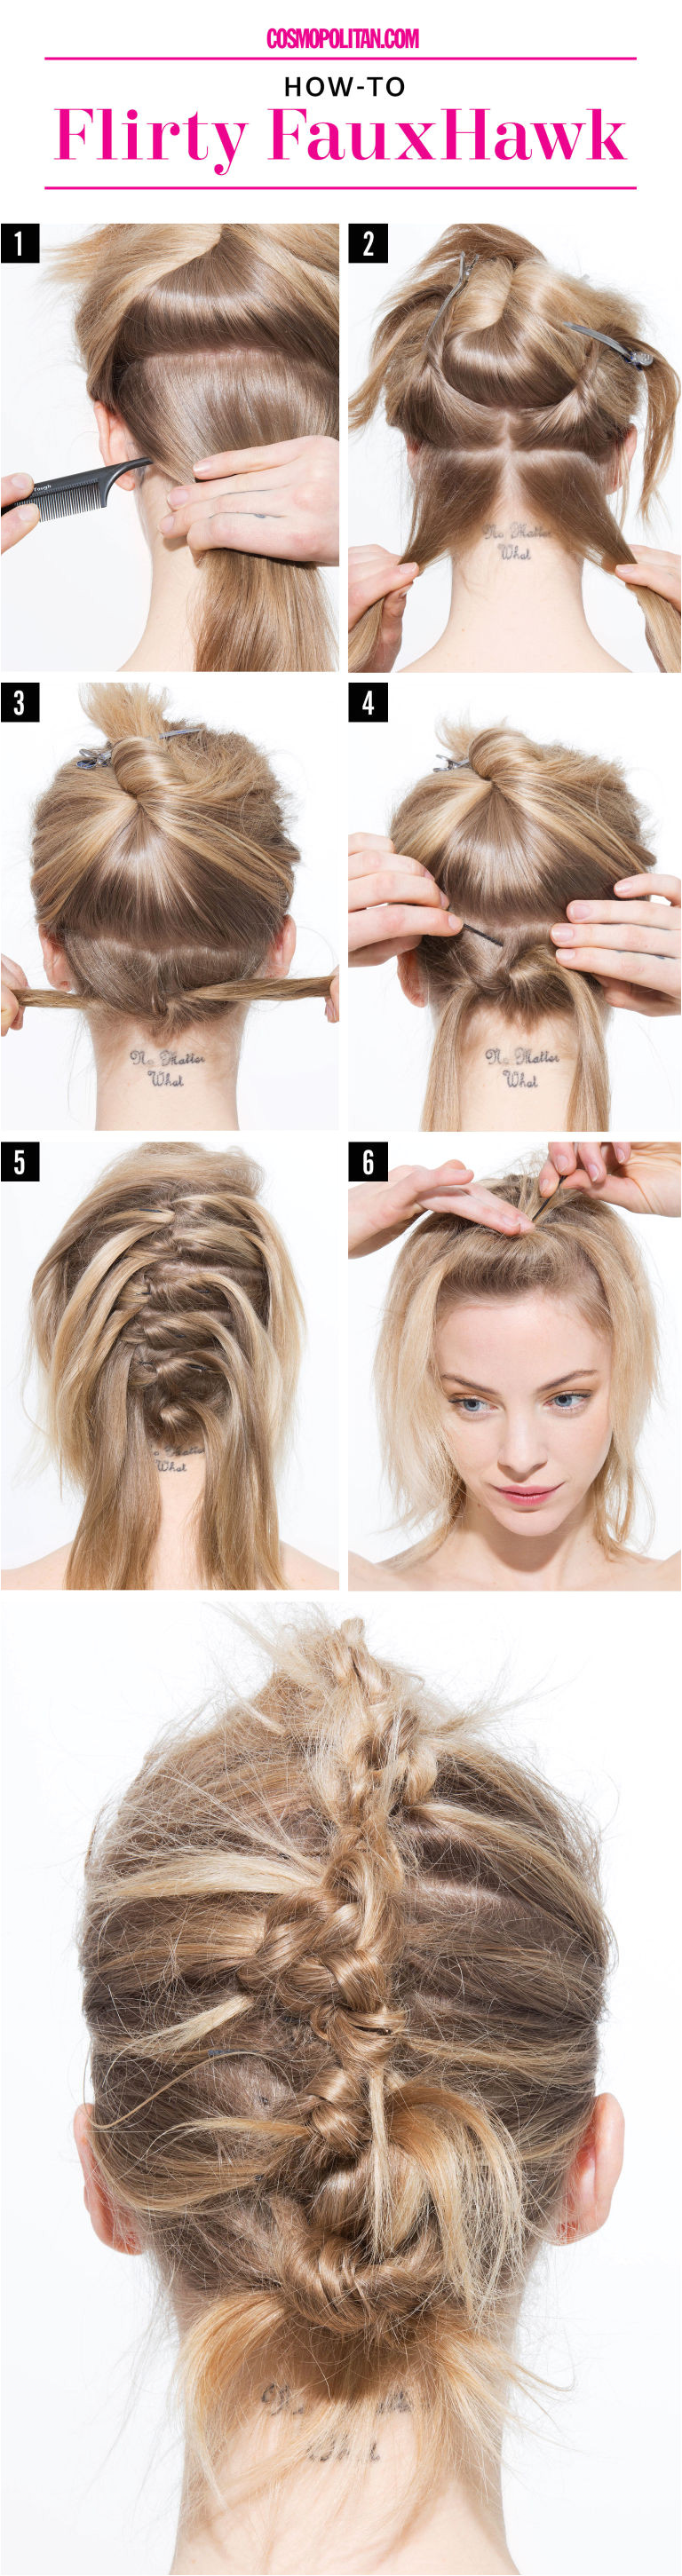 4 Easy Hairstyles for School 4 Last Minute Diy evening Hairstyles that Will Leave You Looking Hot